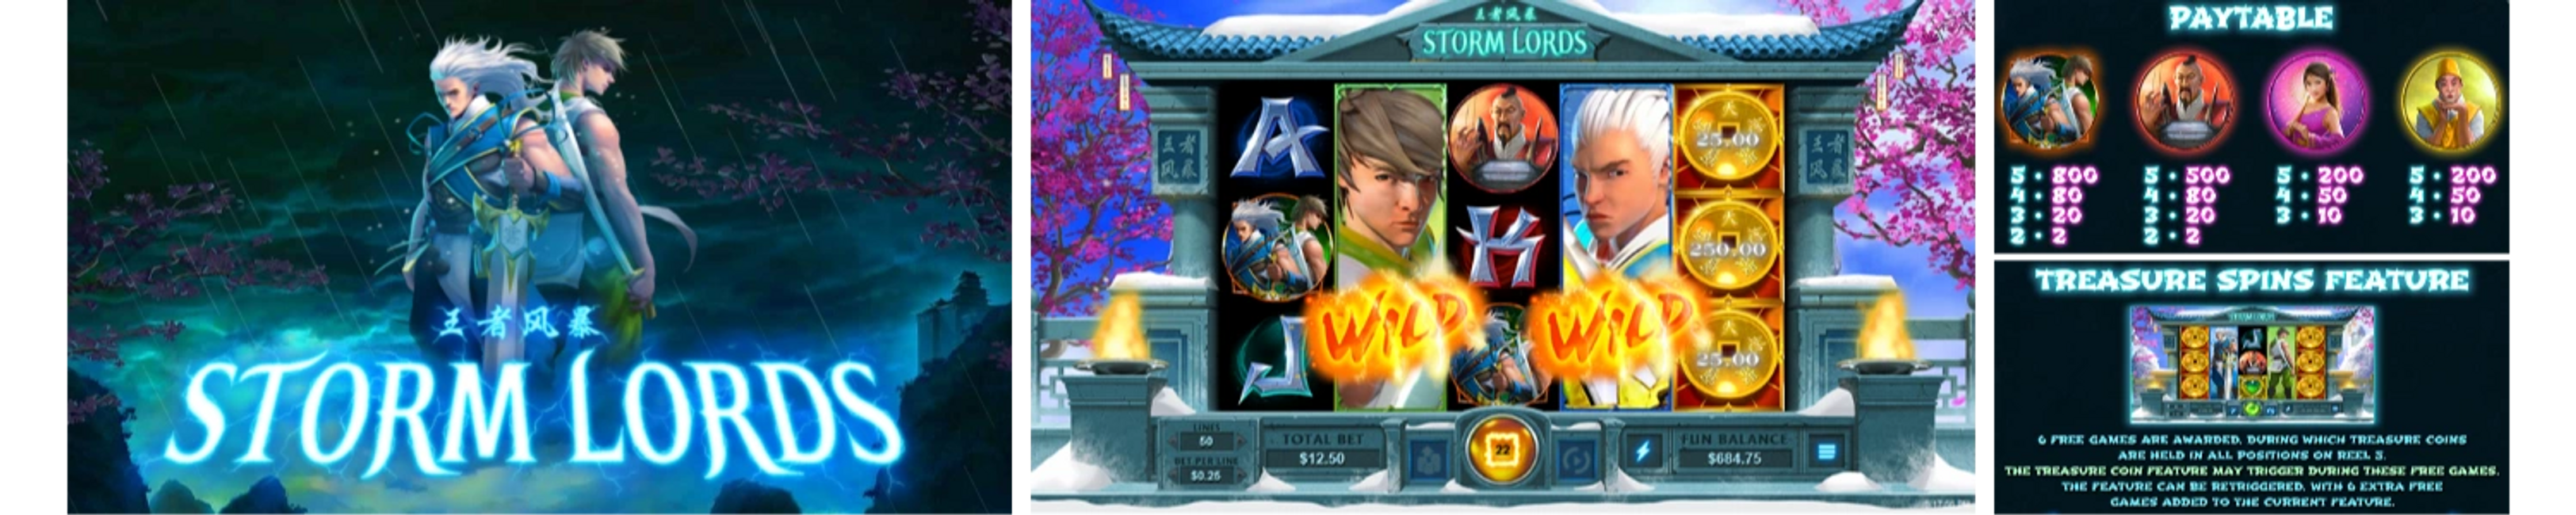 Storm Lords Online Video Slot Review